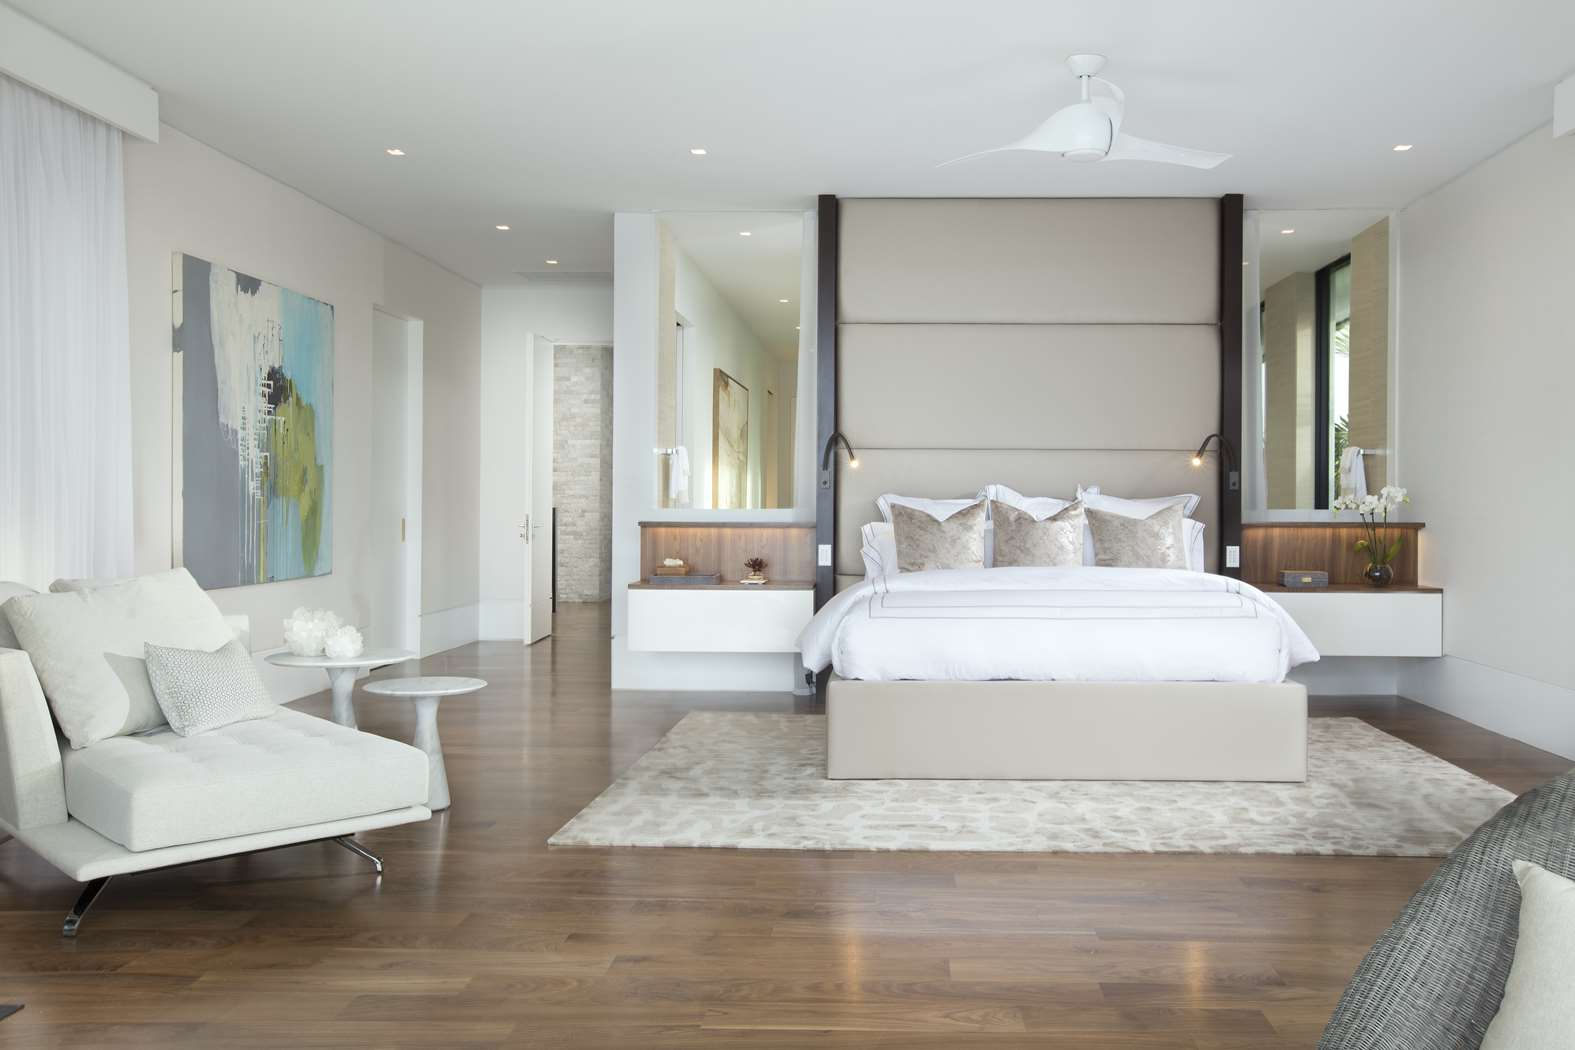 big-bedrooms-contemporary-design-dkor-interiors